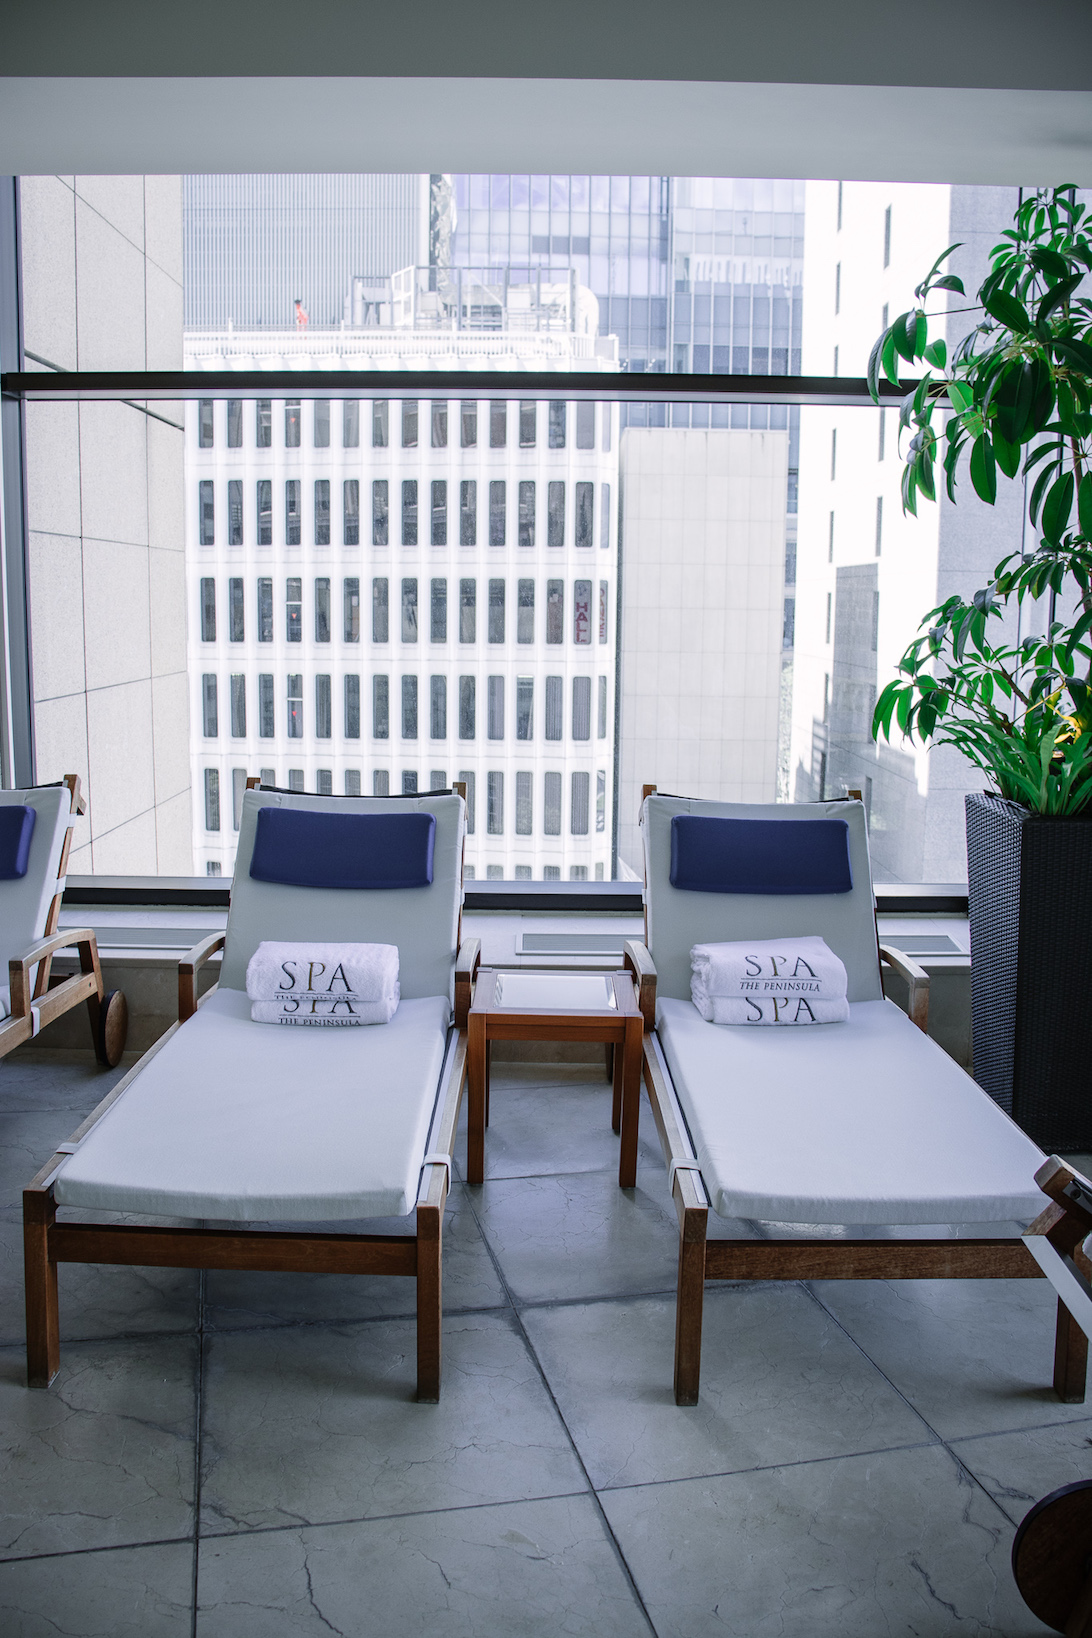 Peninsula Tokyo Hotel poolside chairs